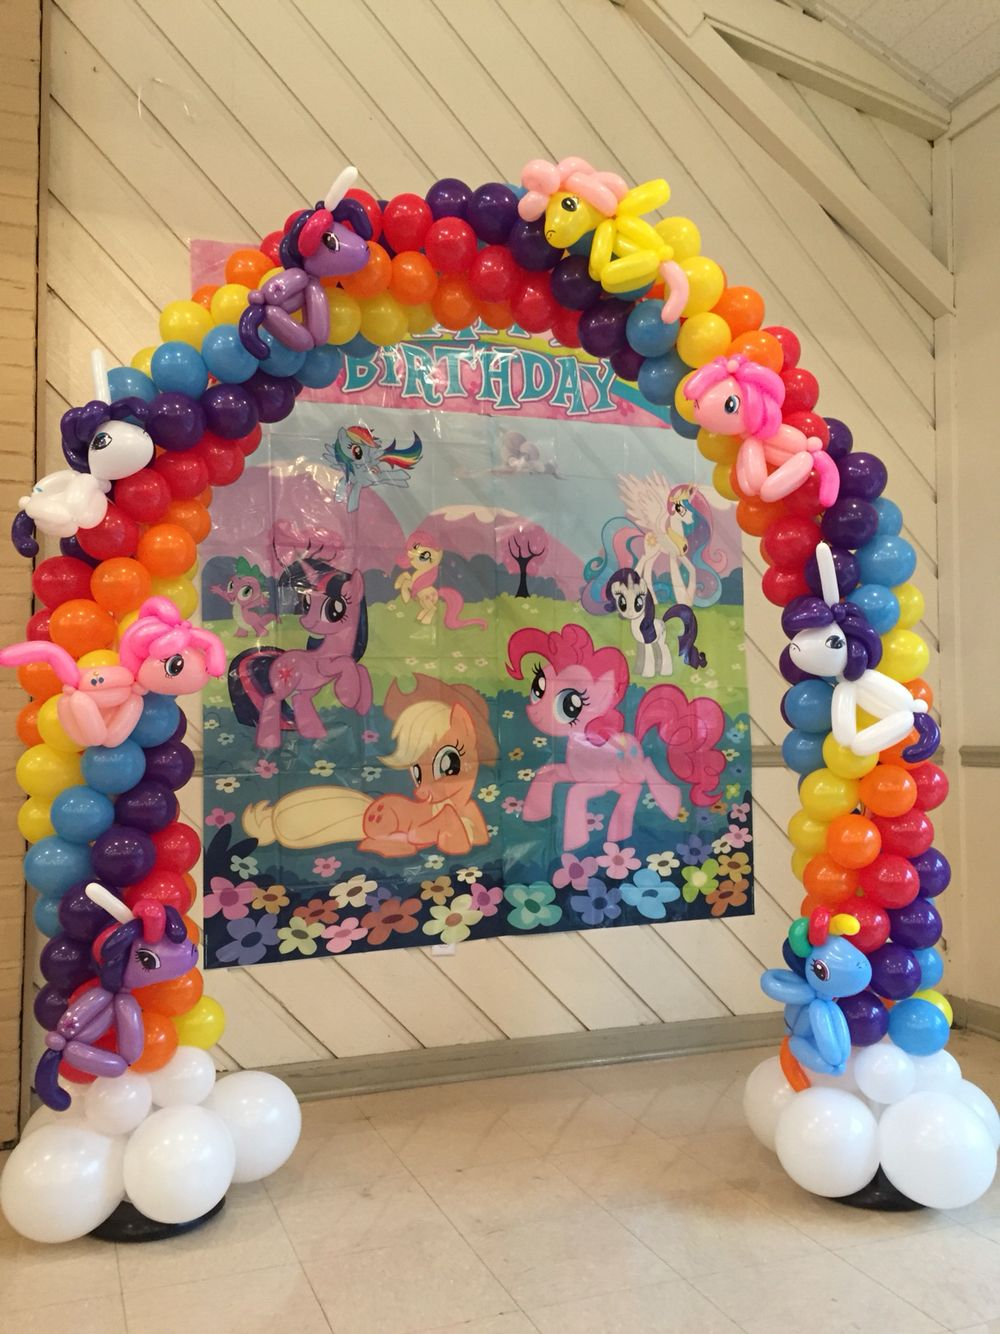 Here is a My Little Pony themed